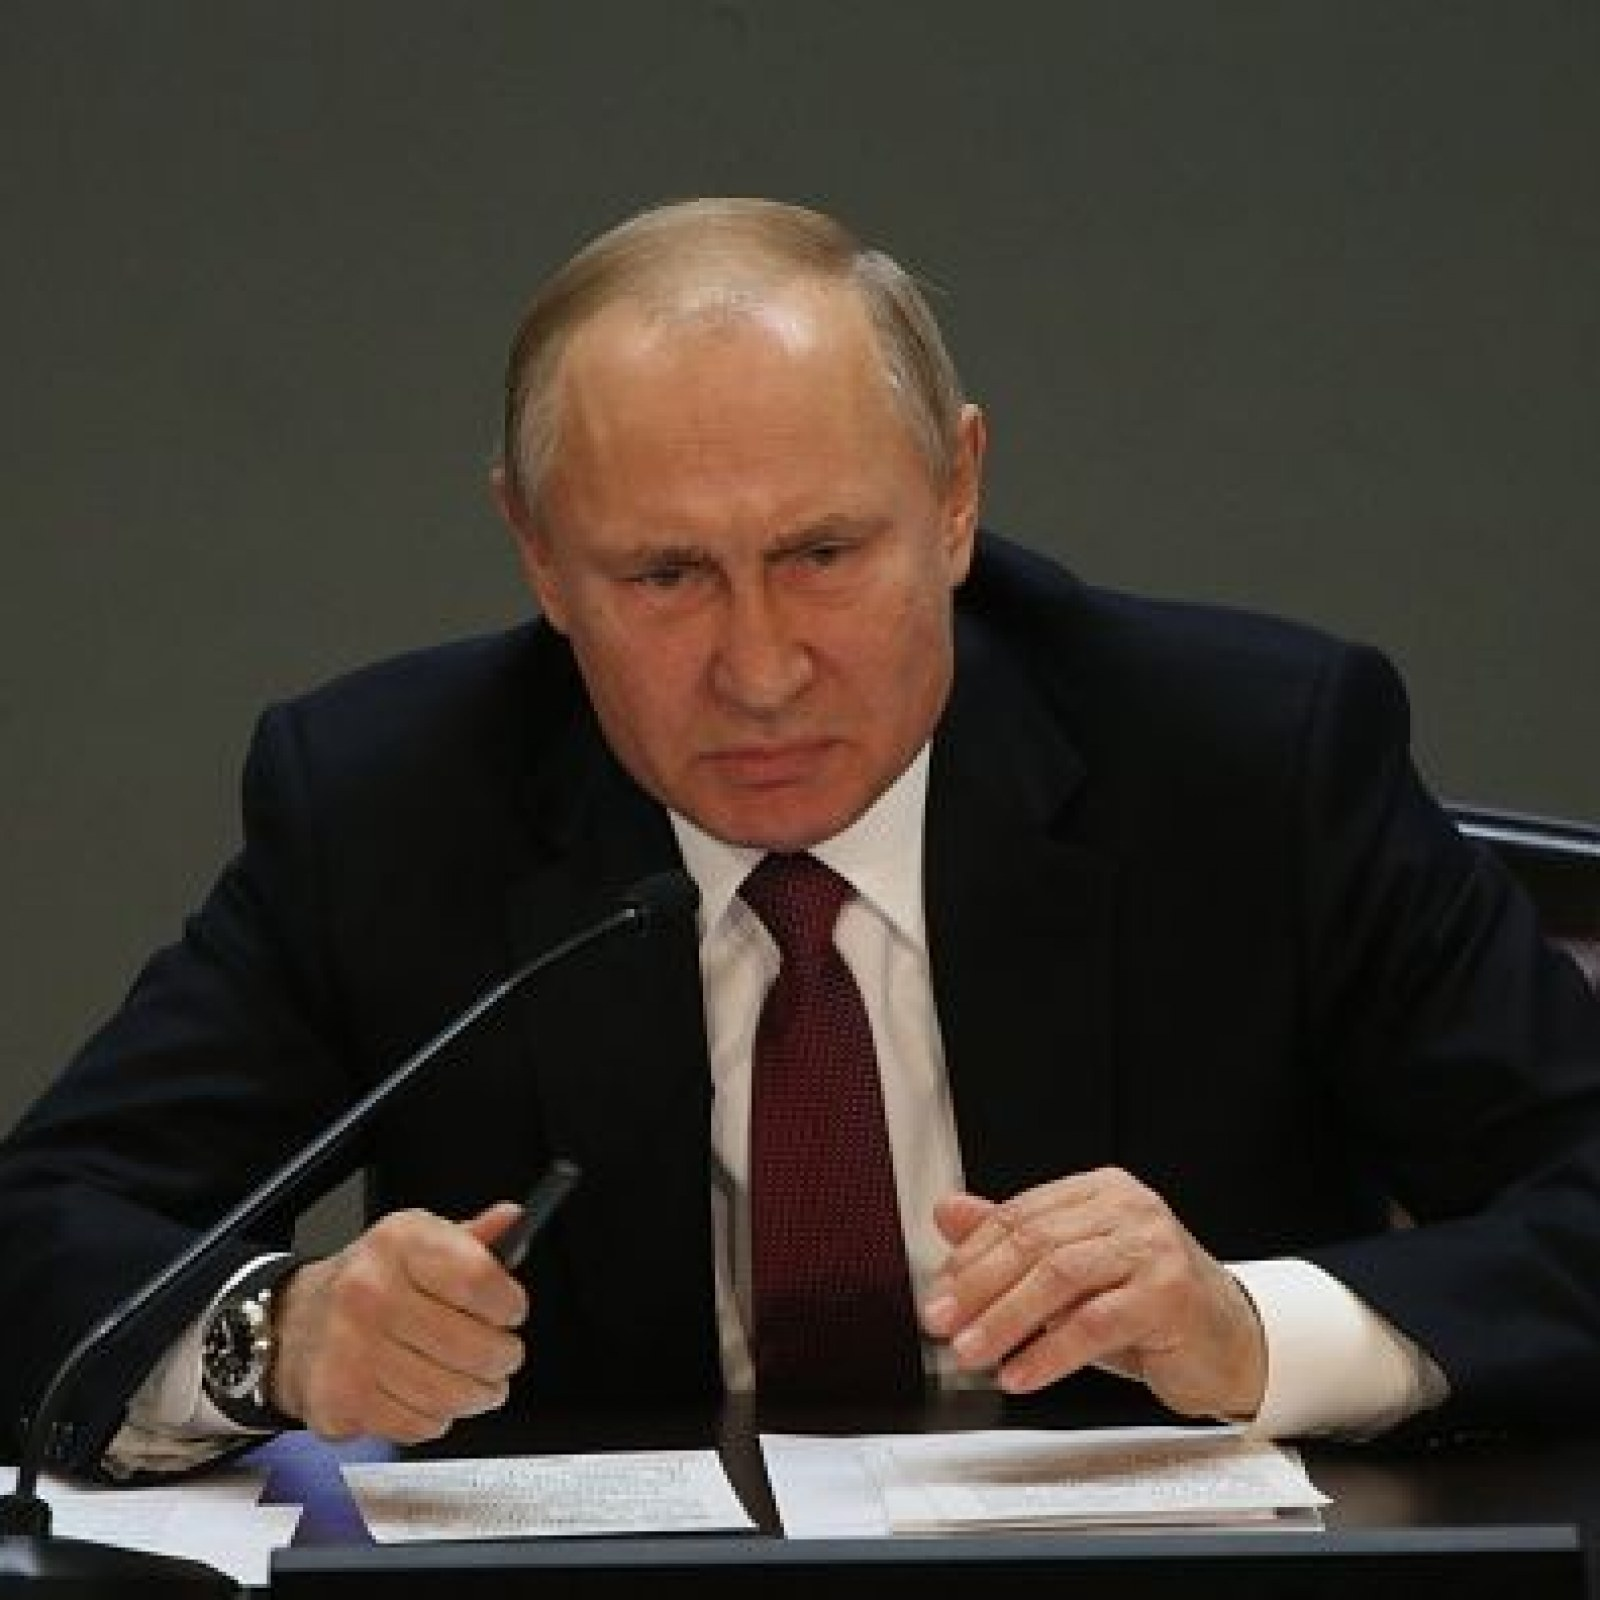 Is Vladimir Putin The World S Richest Person Congress Sets Out To Find Russian President S Hidden Net Worth